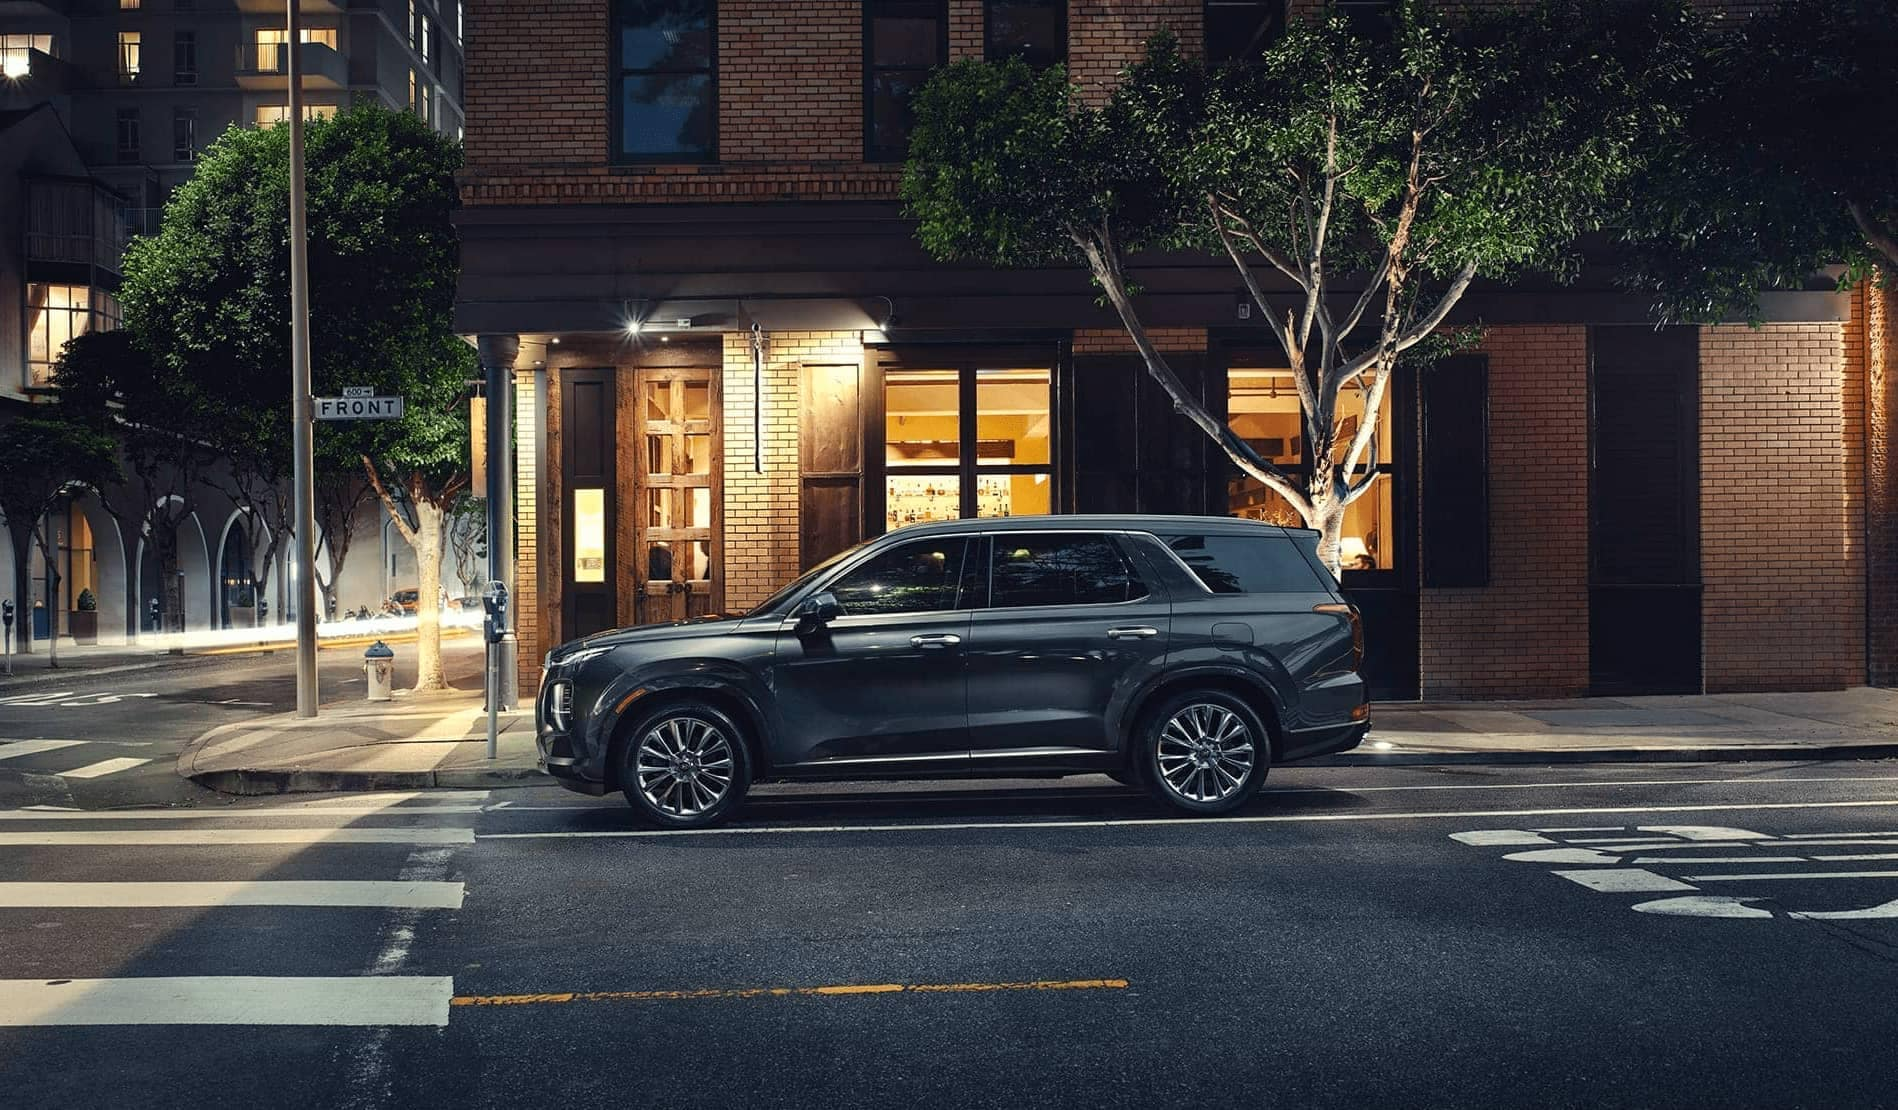 Hyundai Palisade at street light